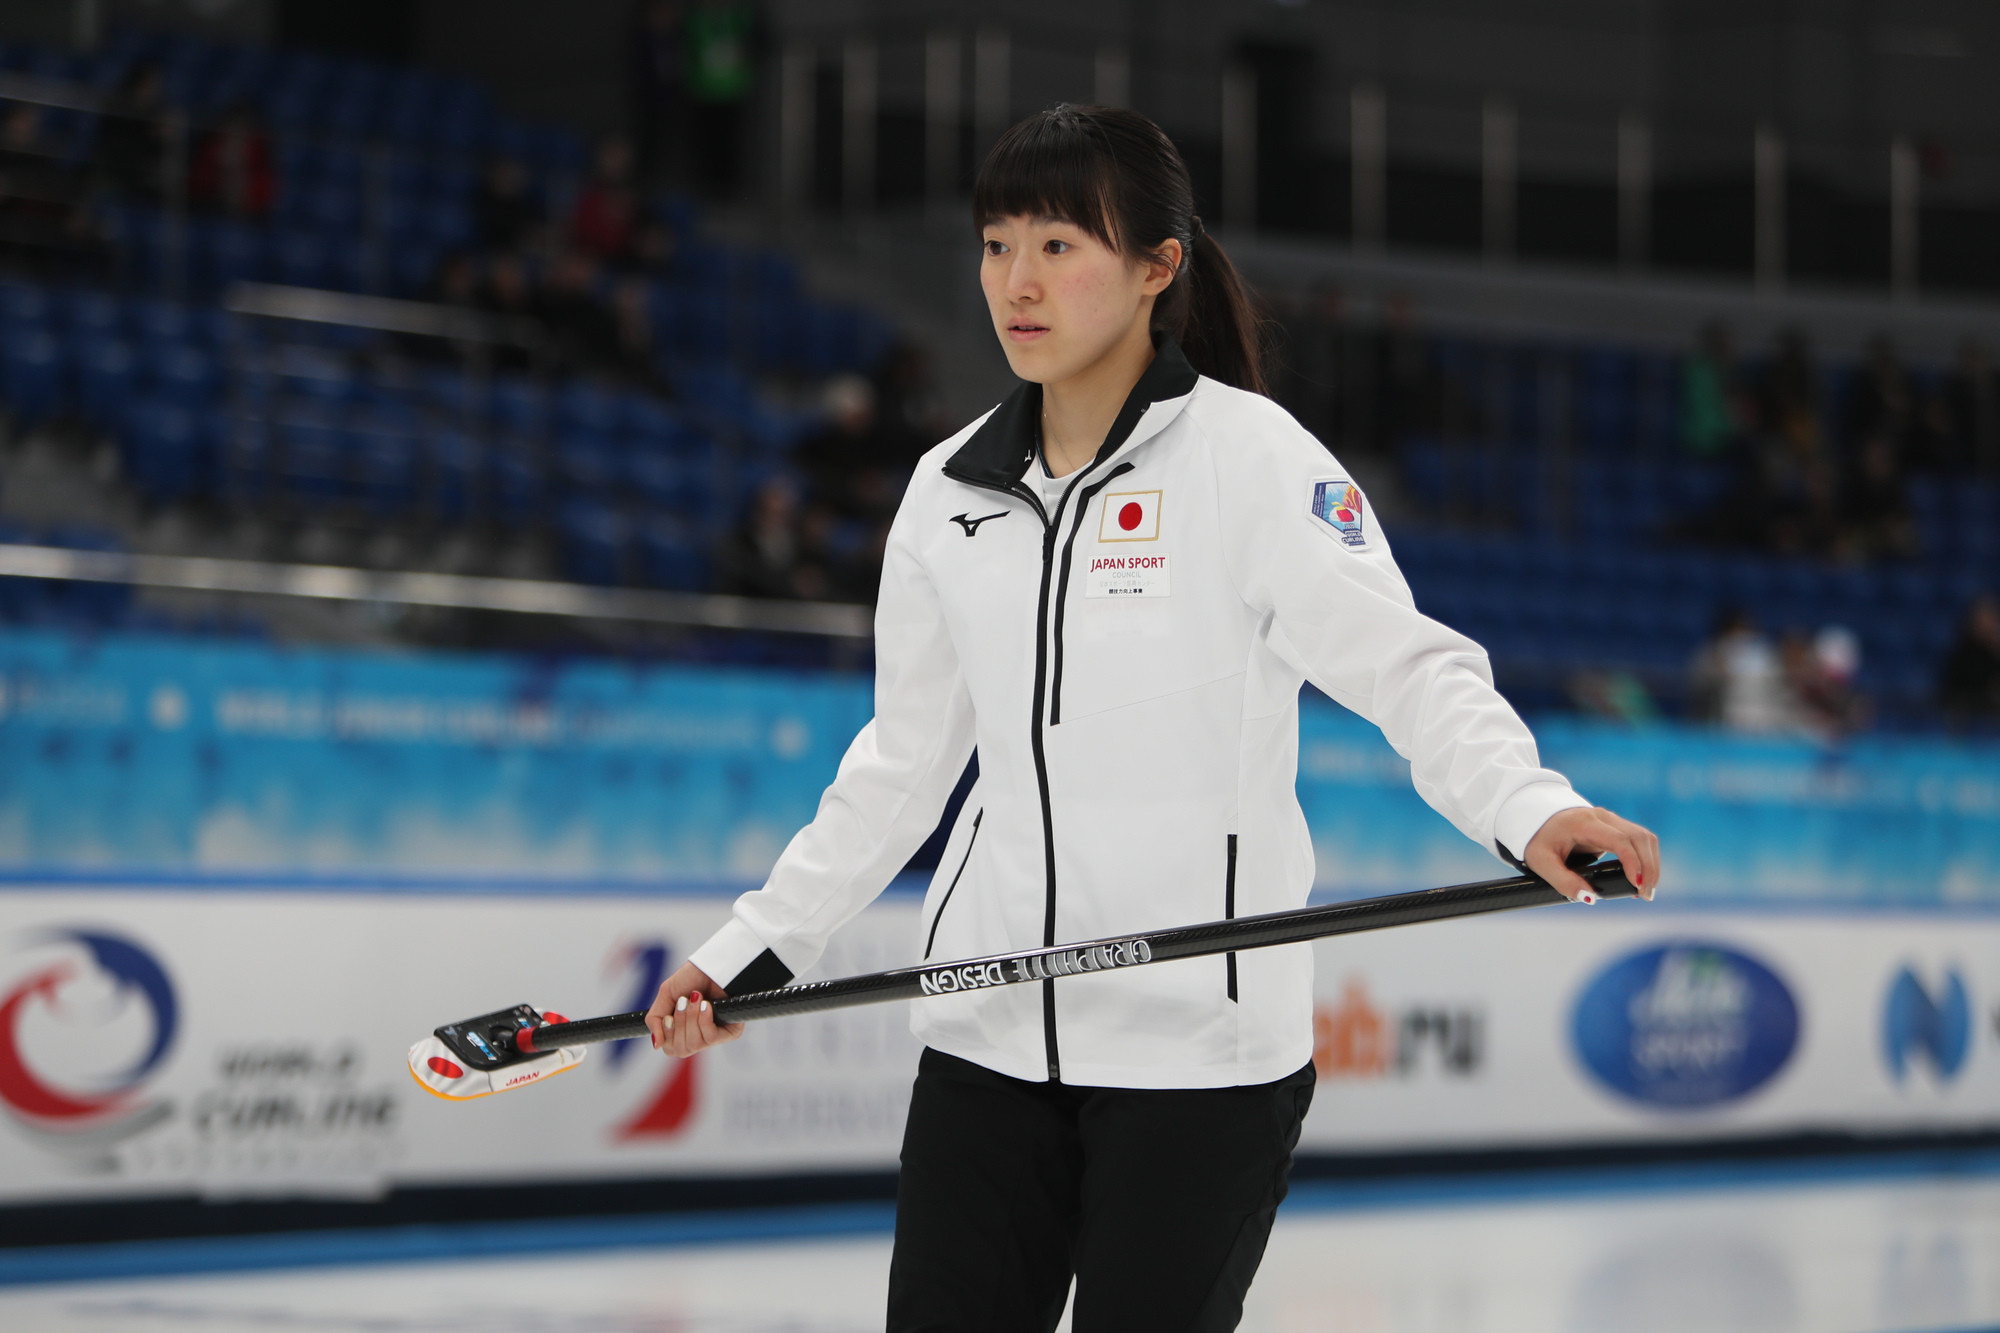 Three women's teams remain unbeaten on day two of World Junior Curling Championships